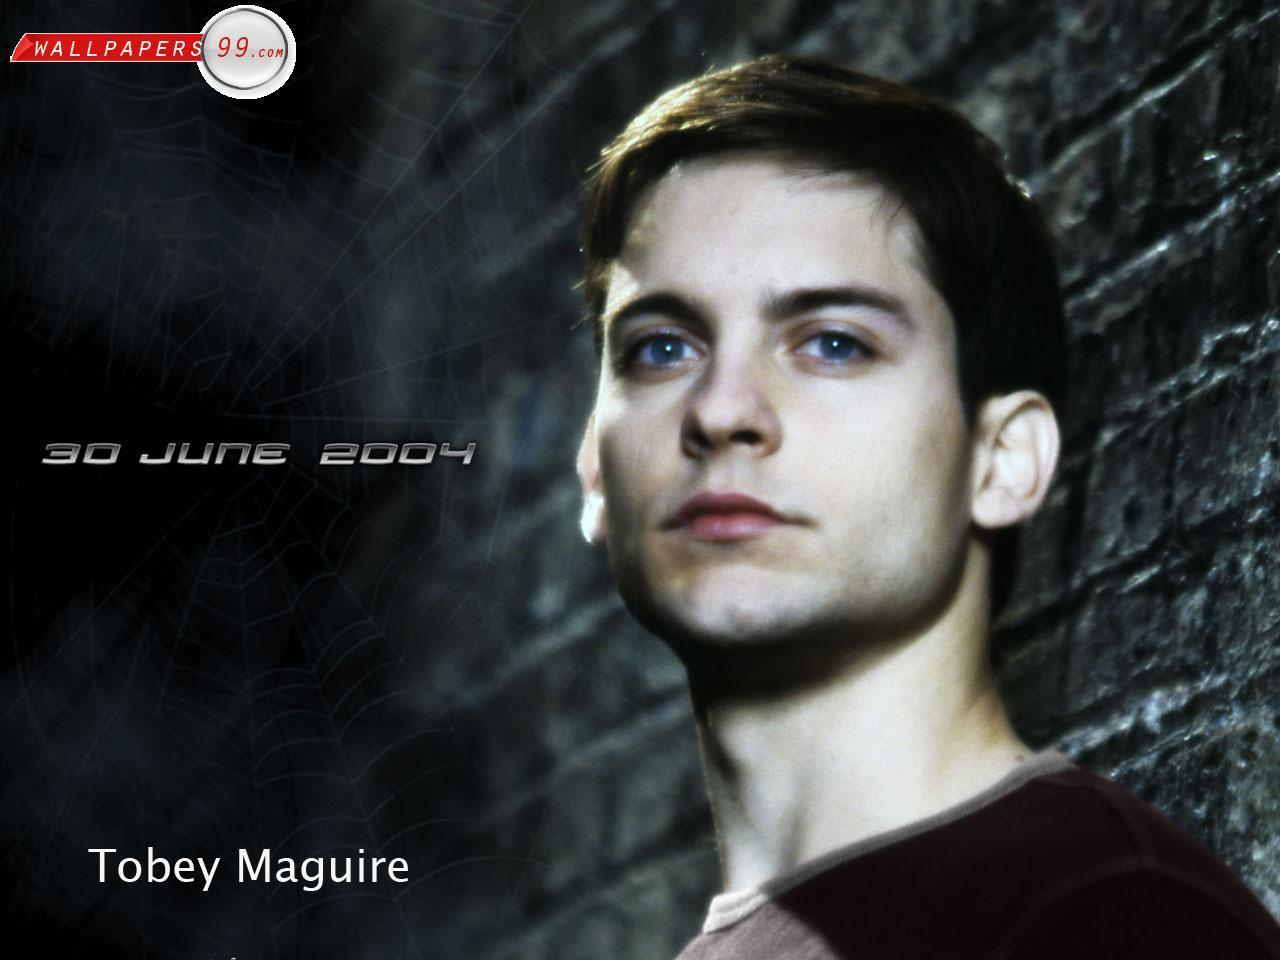 Free Tobey Maguire Wallpapers Photos Pictures Image Free 1280x960